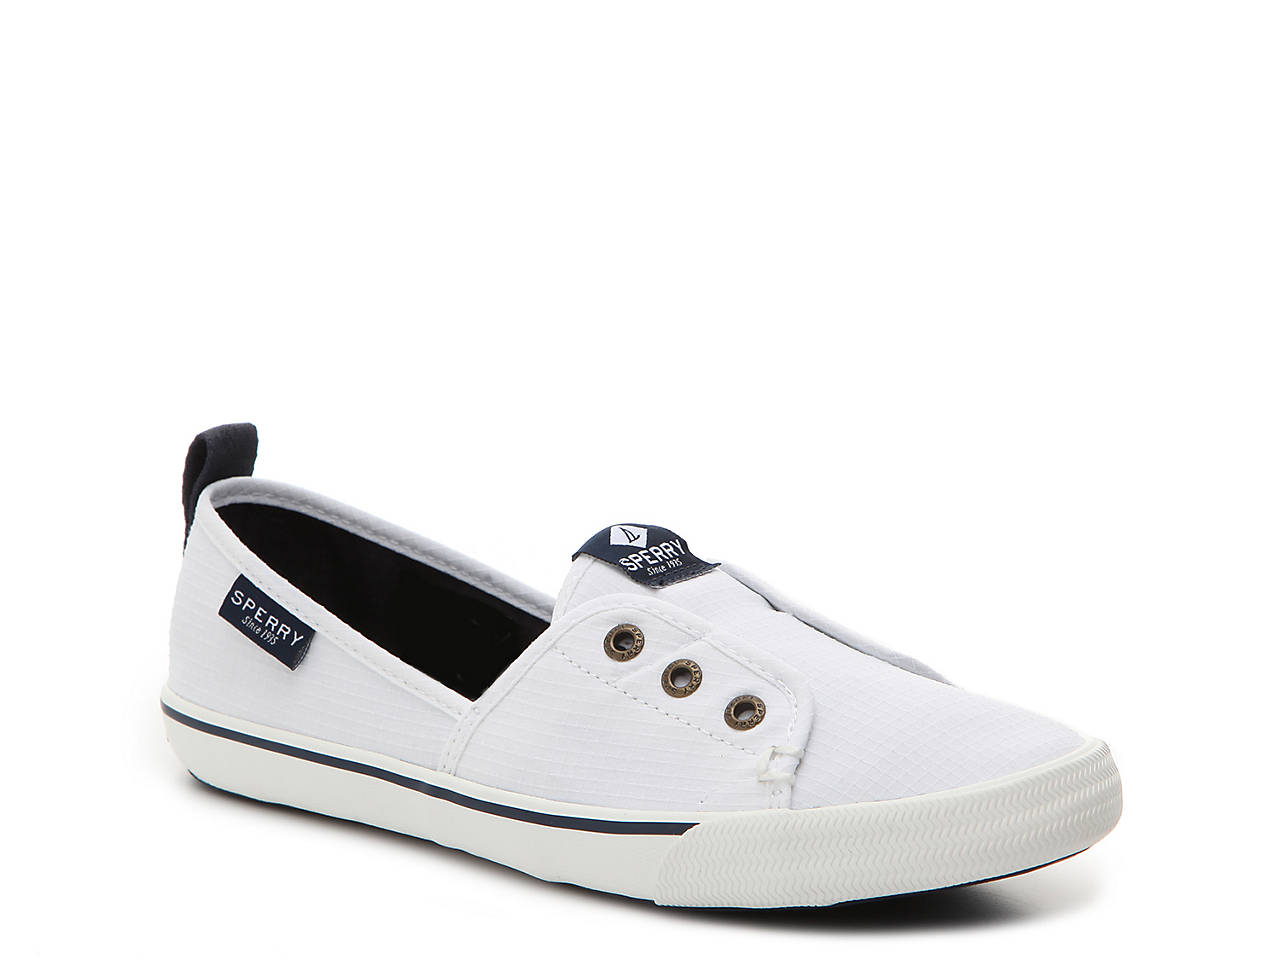 Sperry Top-Sider Lounge Wharf Slip-On Sneaker Women s Shoes  39e440223